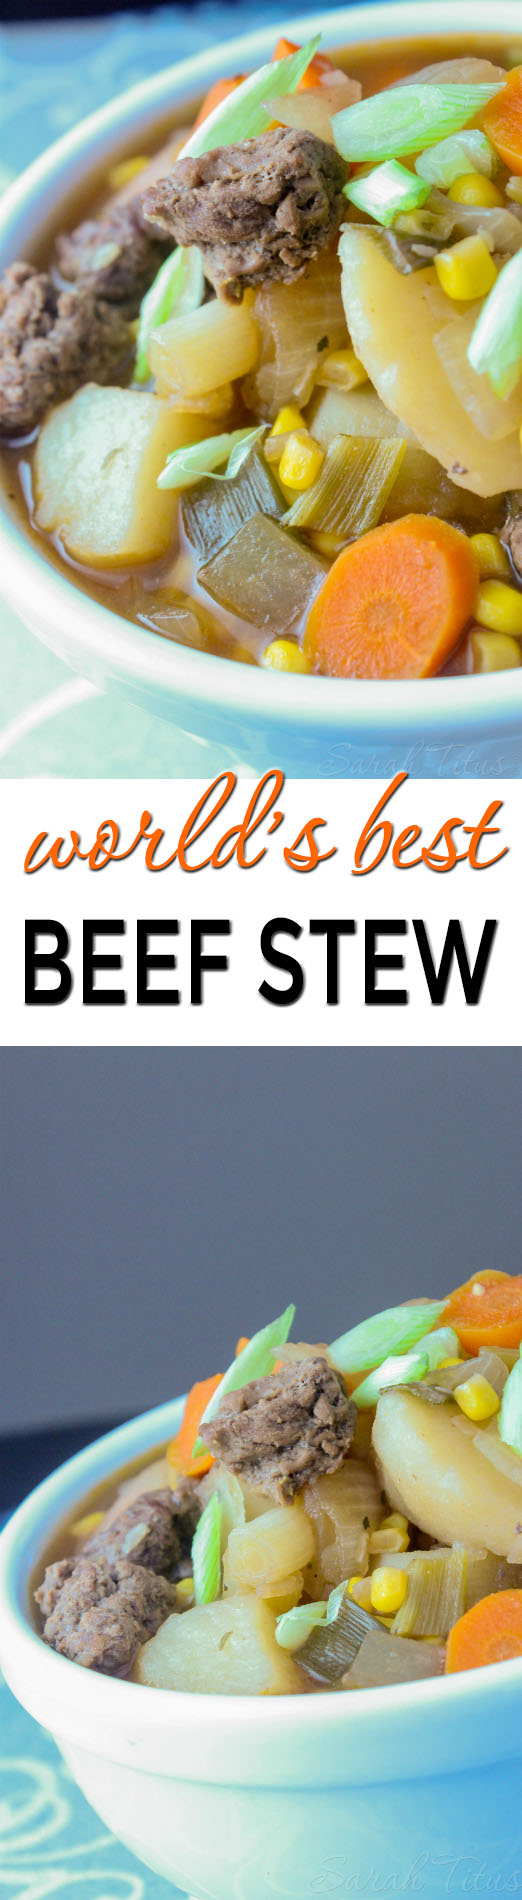 Beef Stew - Everyone who eats my world's best beef stew says it's the best recipe they've ever tried. My family always asks me to make it & today, I'm sharing my secret recipe!